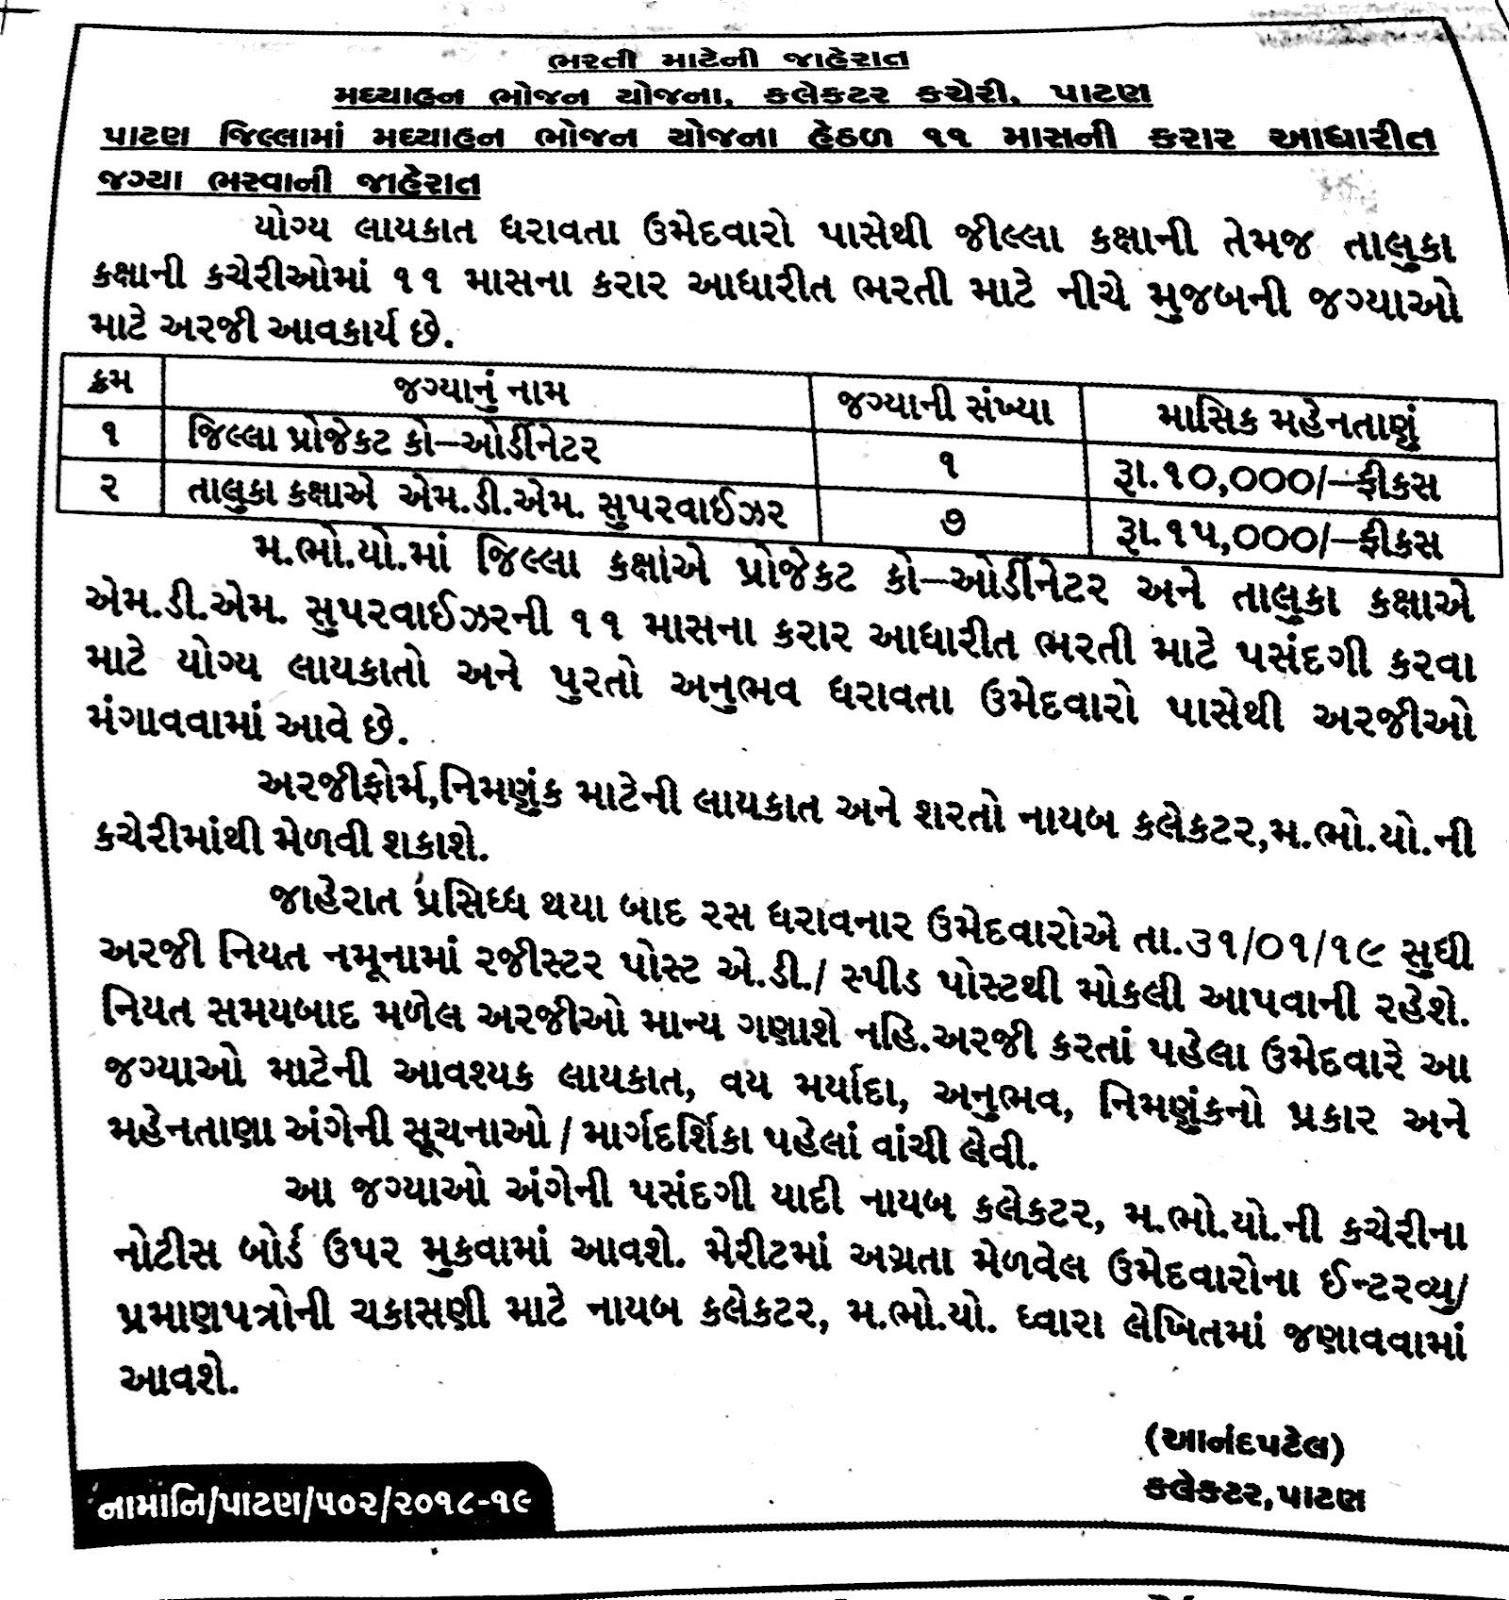 Midday Meal Scheme (MDM),Patan Recruitment for Various